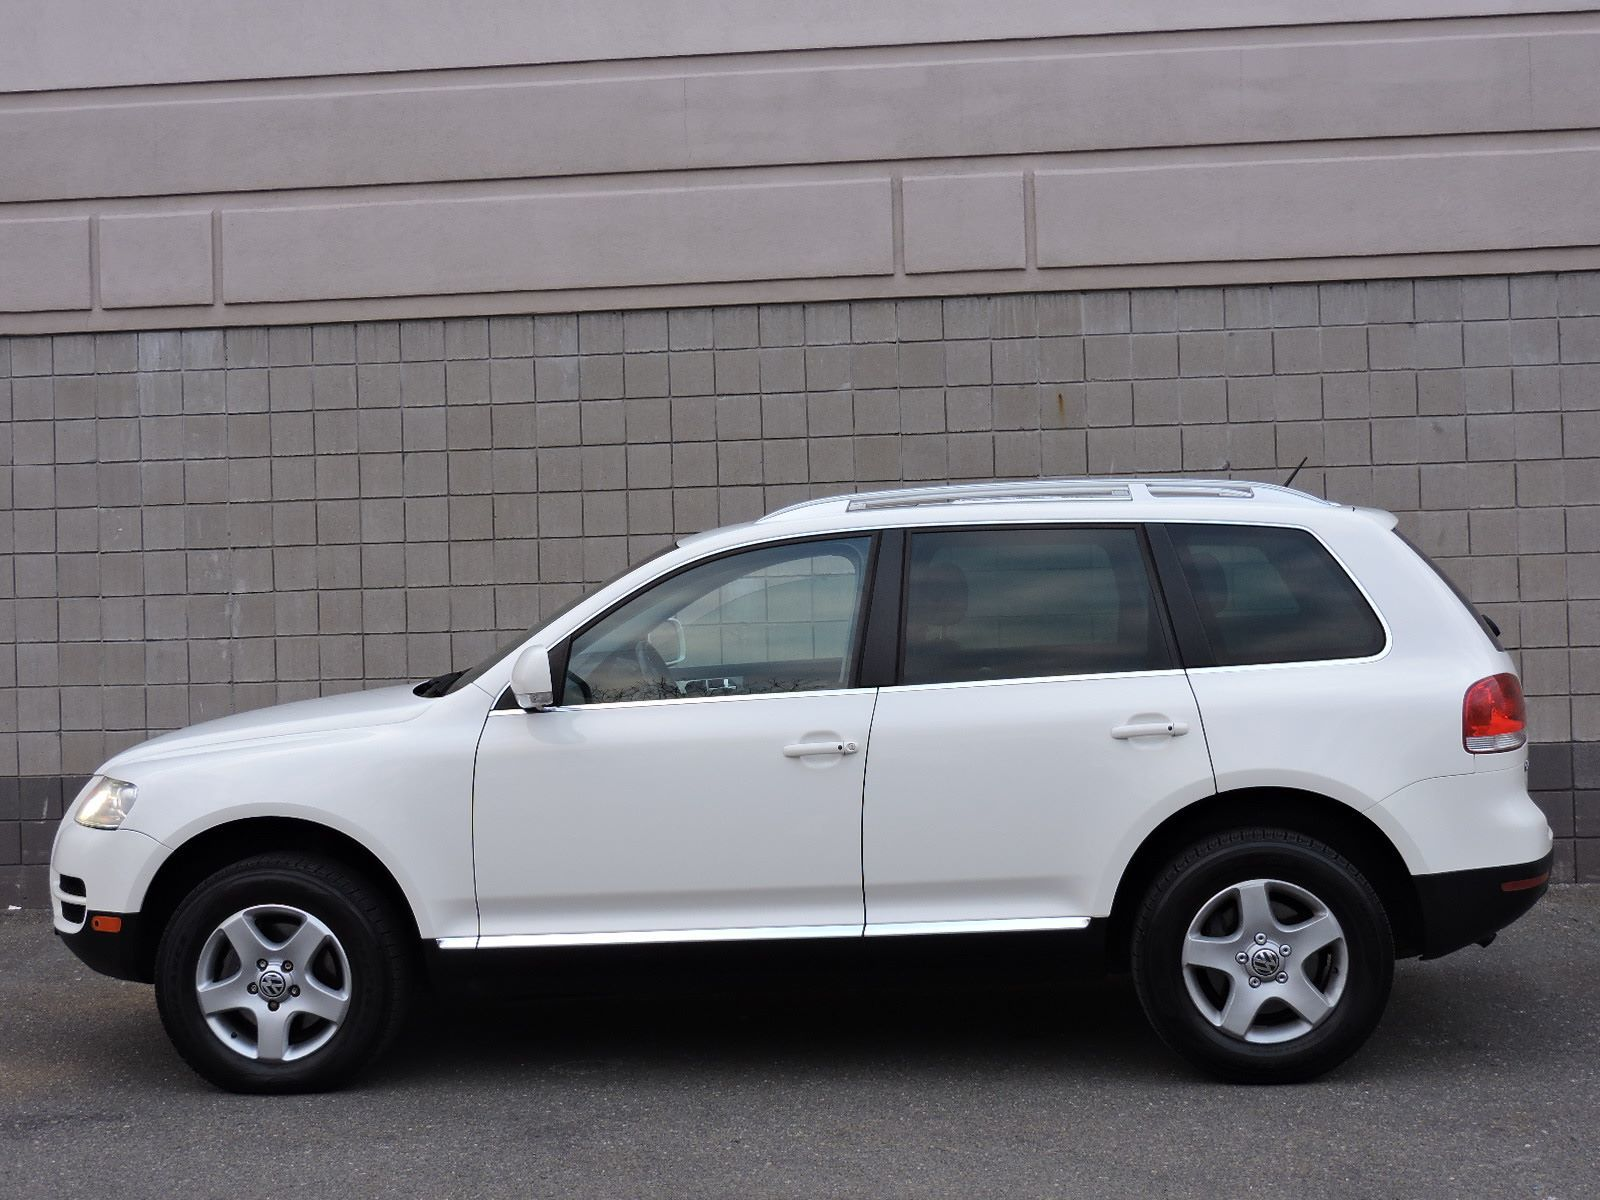 used 2007 volkswagen touareg v6 at saugus auto mall. Black Bedroom Furniture Sets. Home Design Ideas